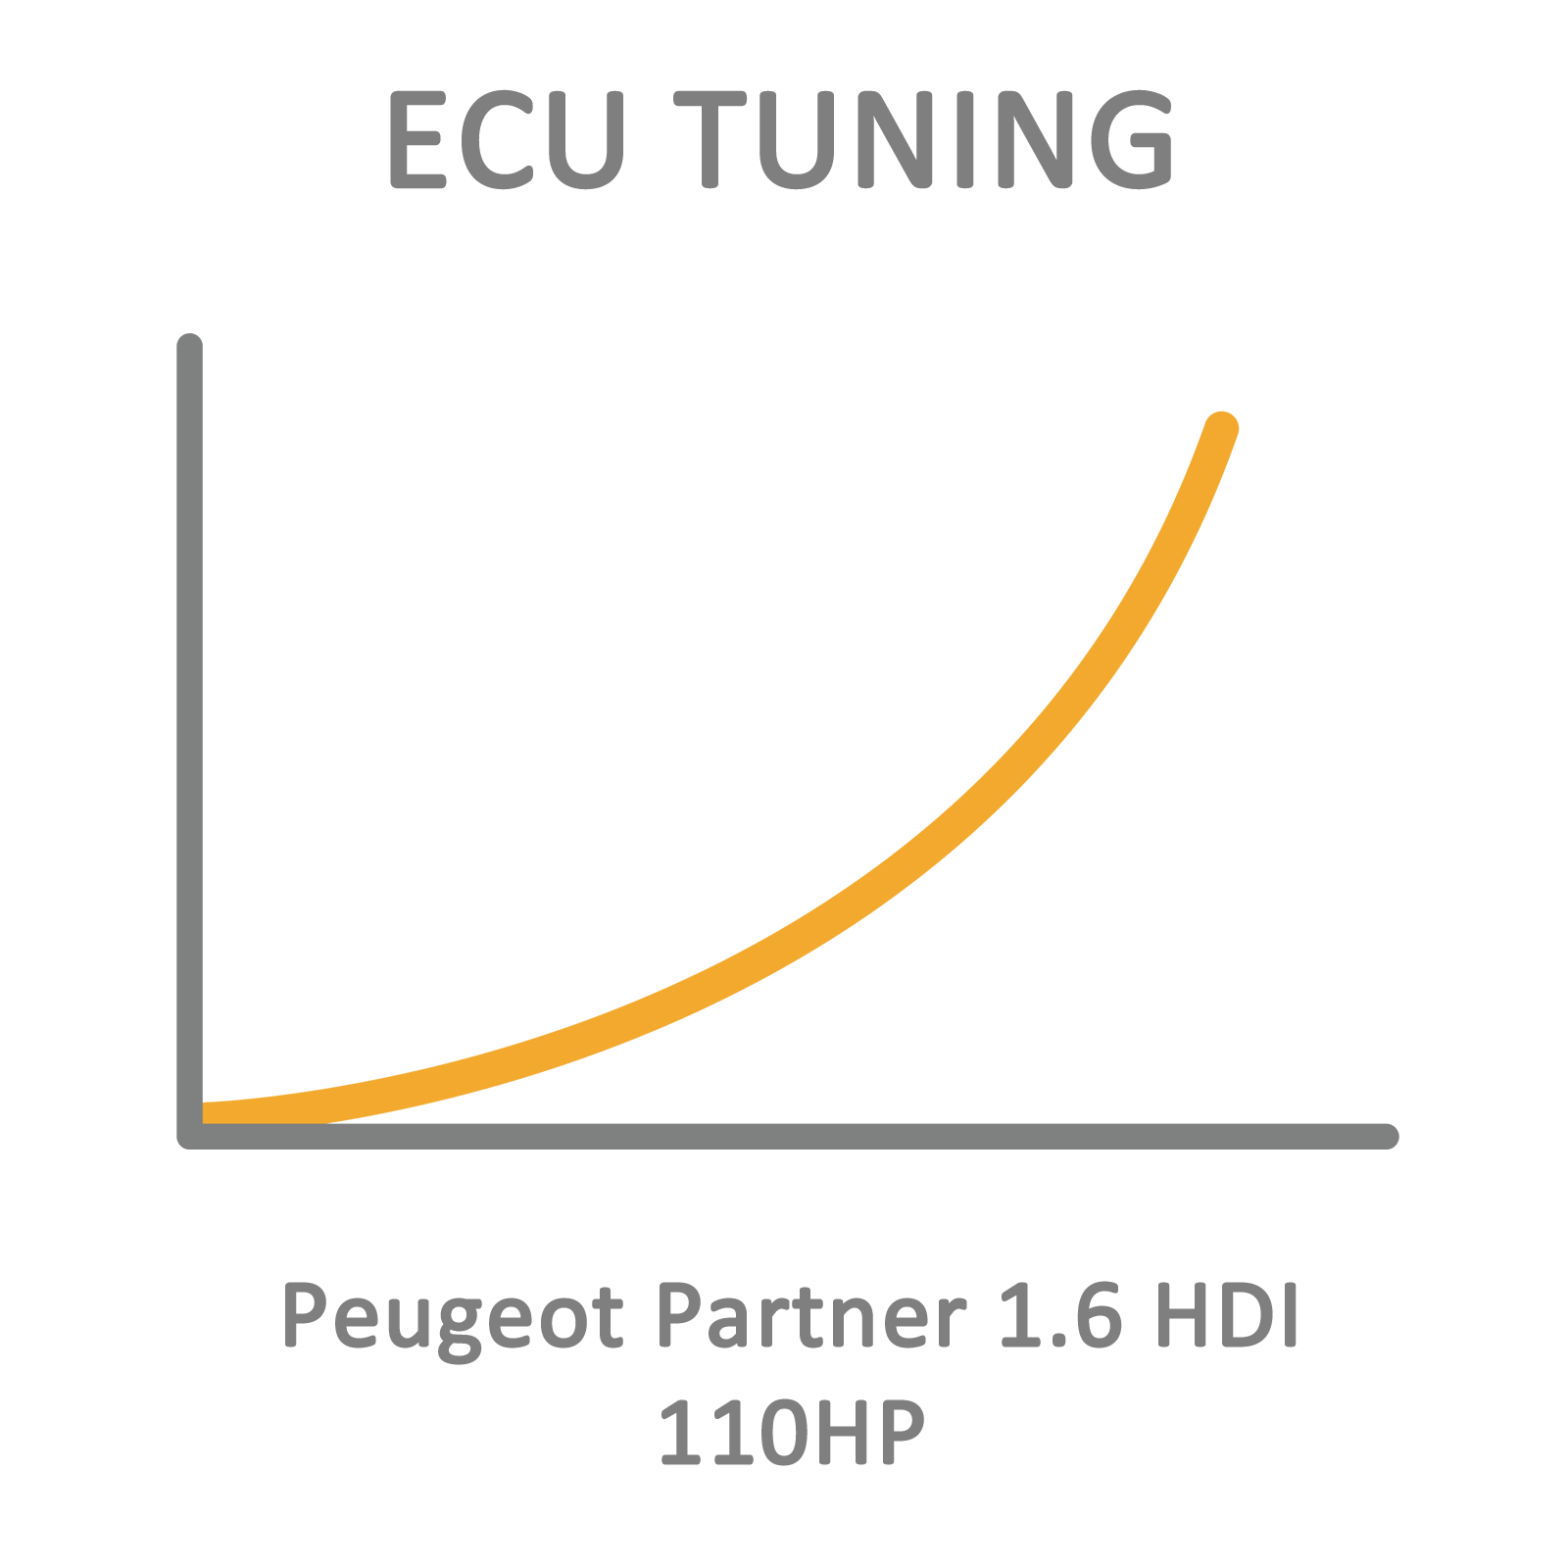 Peugeot Partner 1.6 HDI 110HP ECU Tuning Remapping Programming